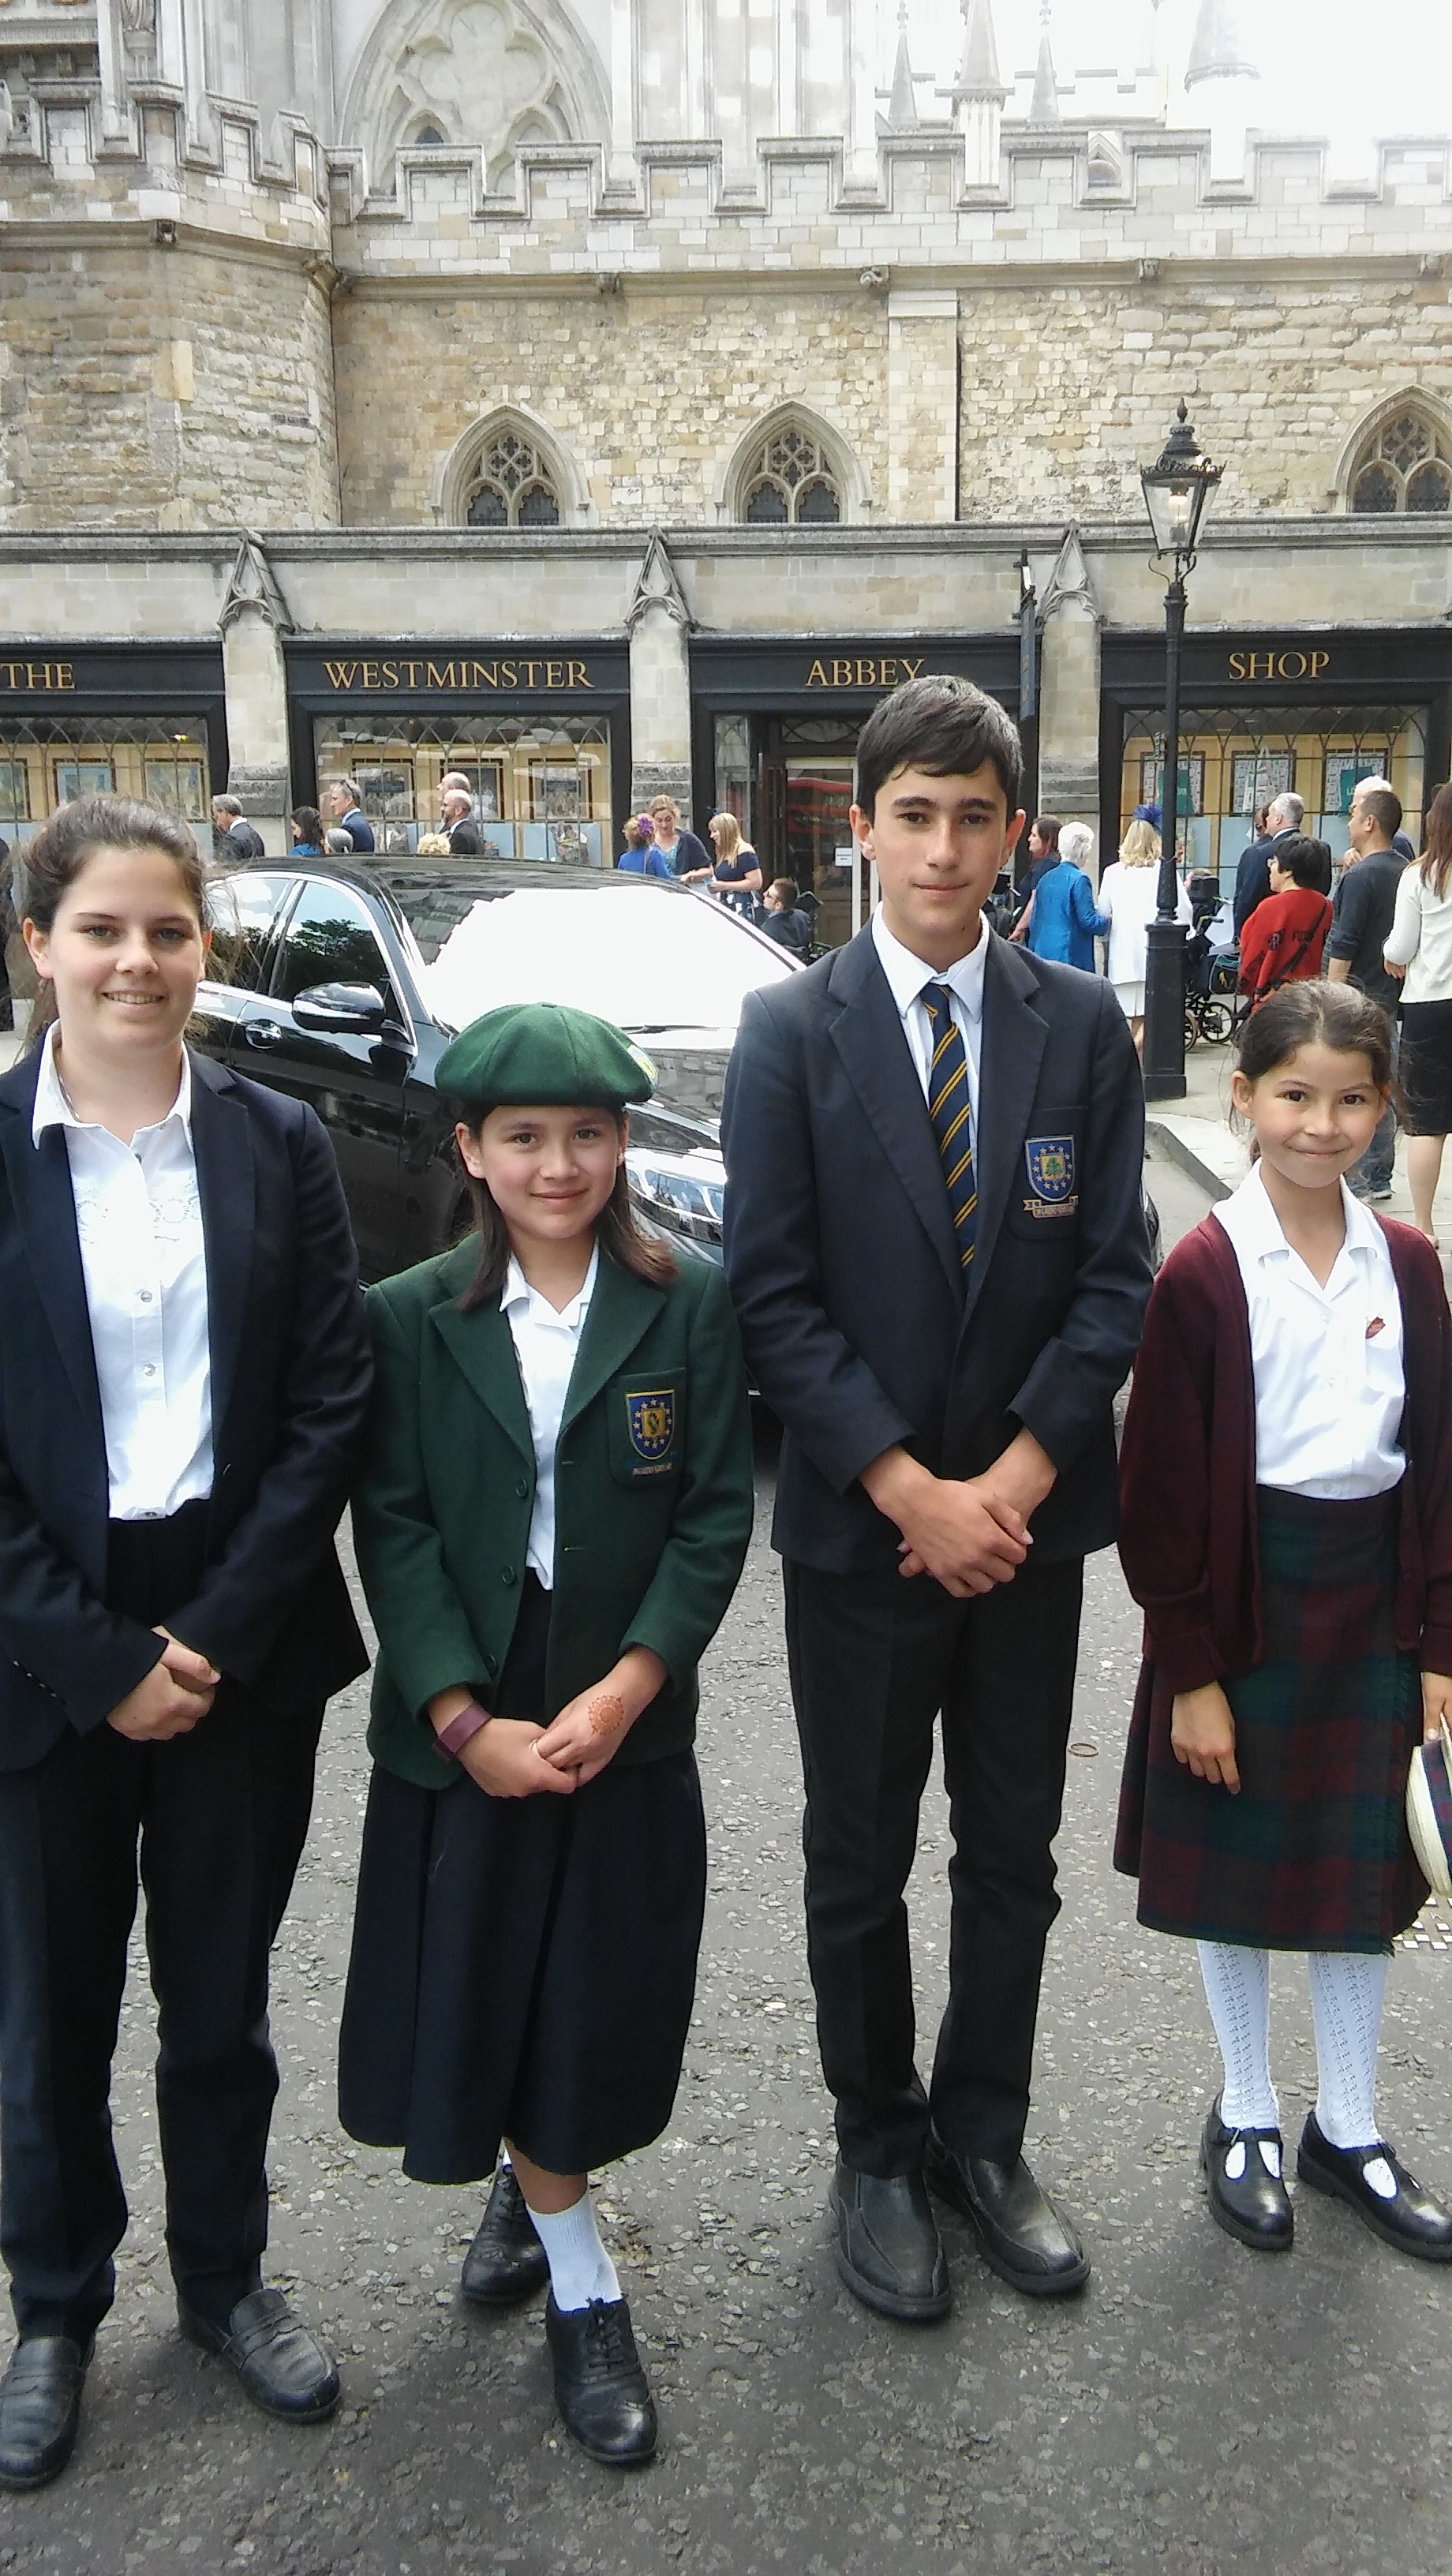 Pupils representing the four PACT Educational Trust Schools - The Laurels, Oakwood, The Cedars and Oliver House